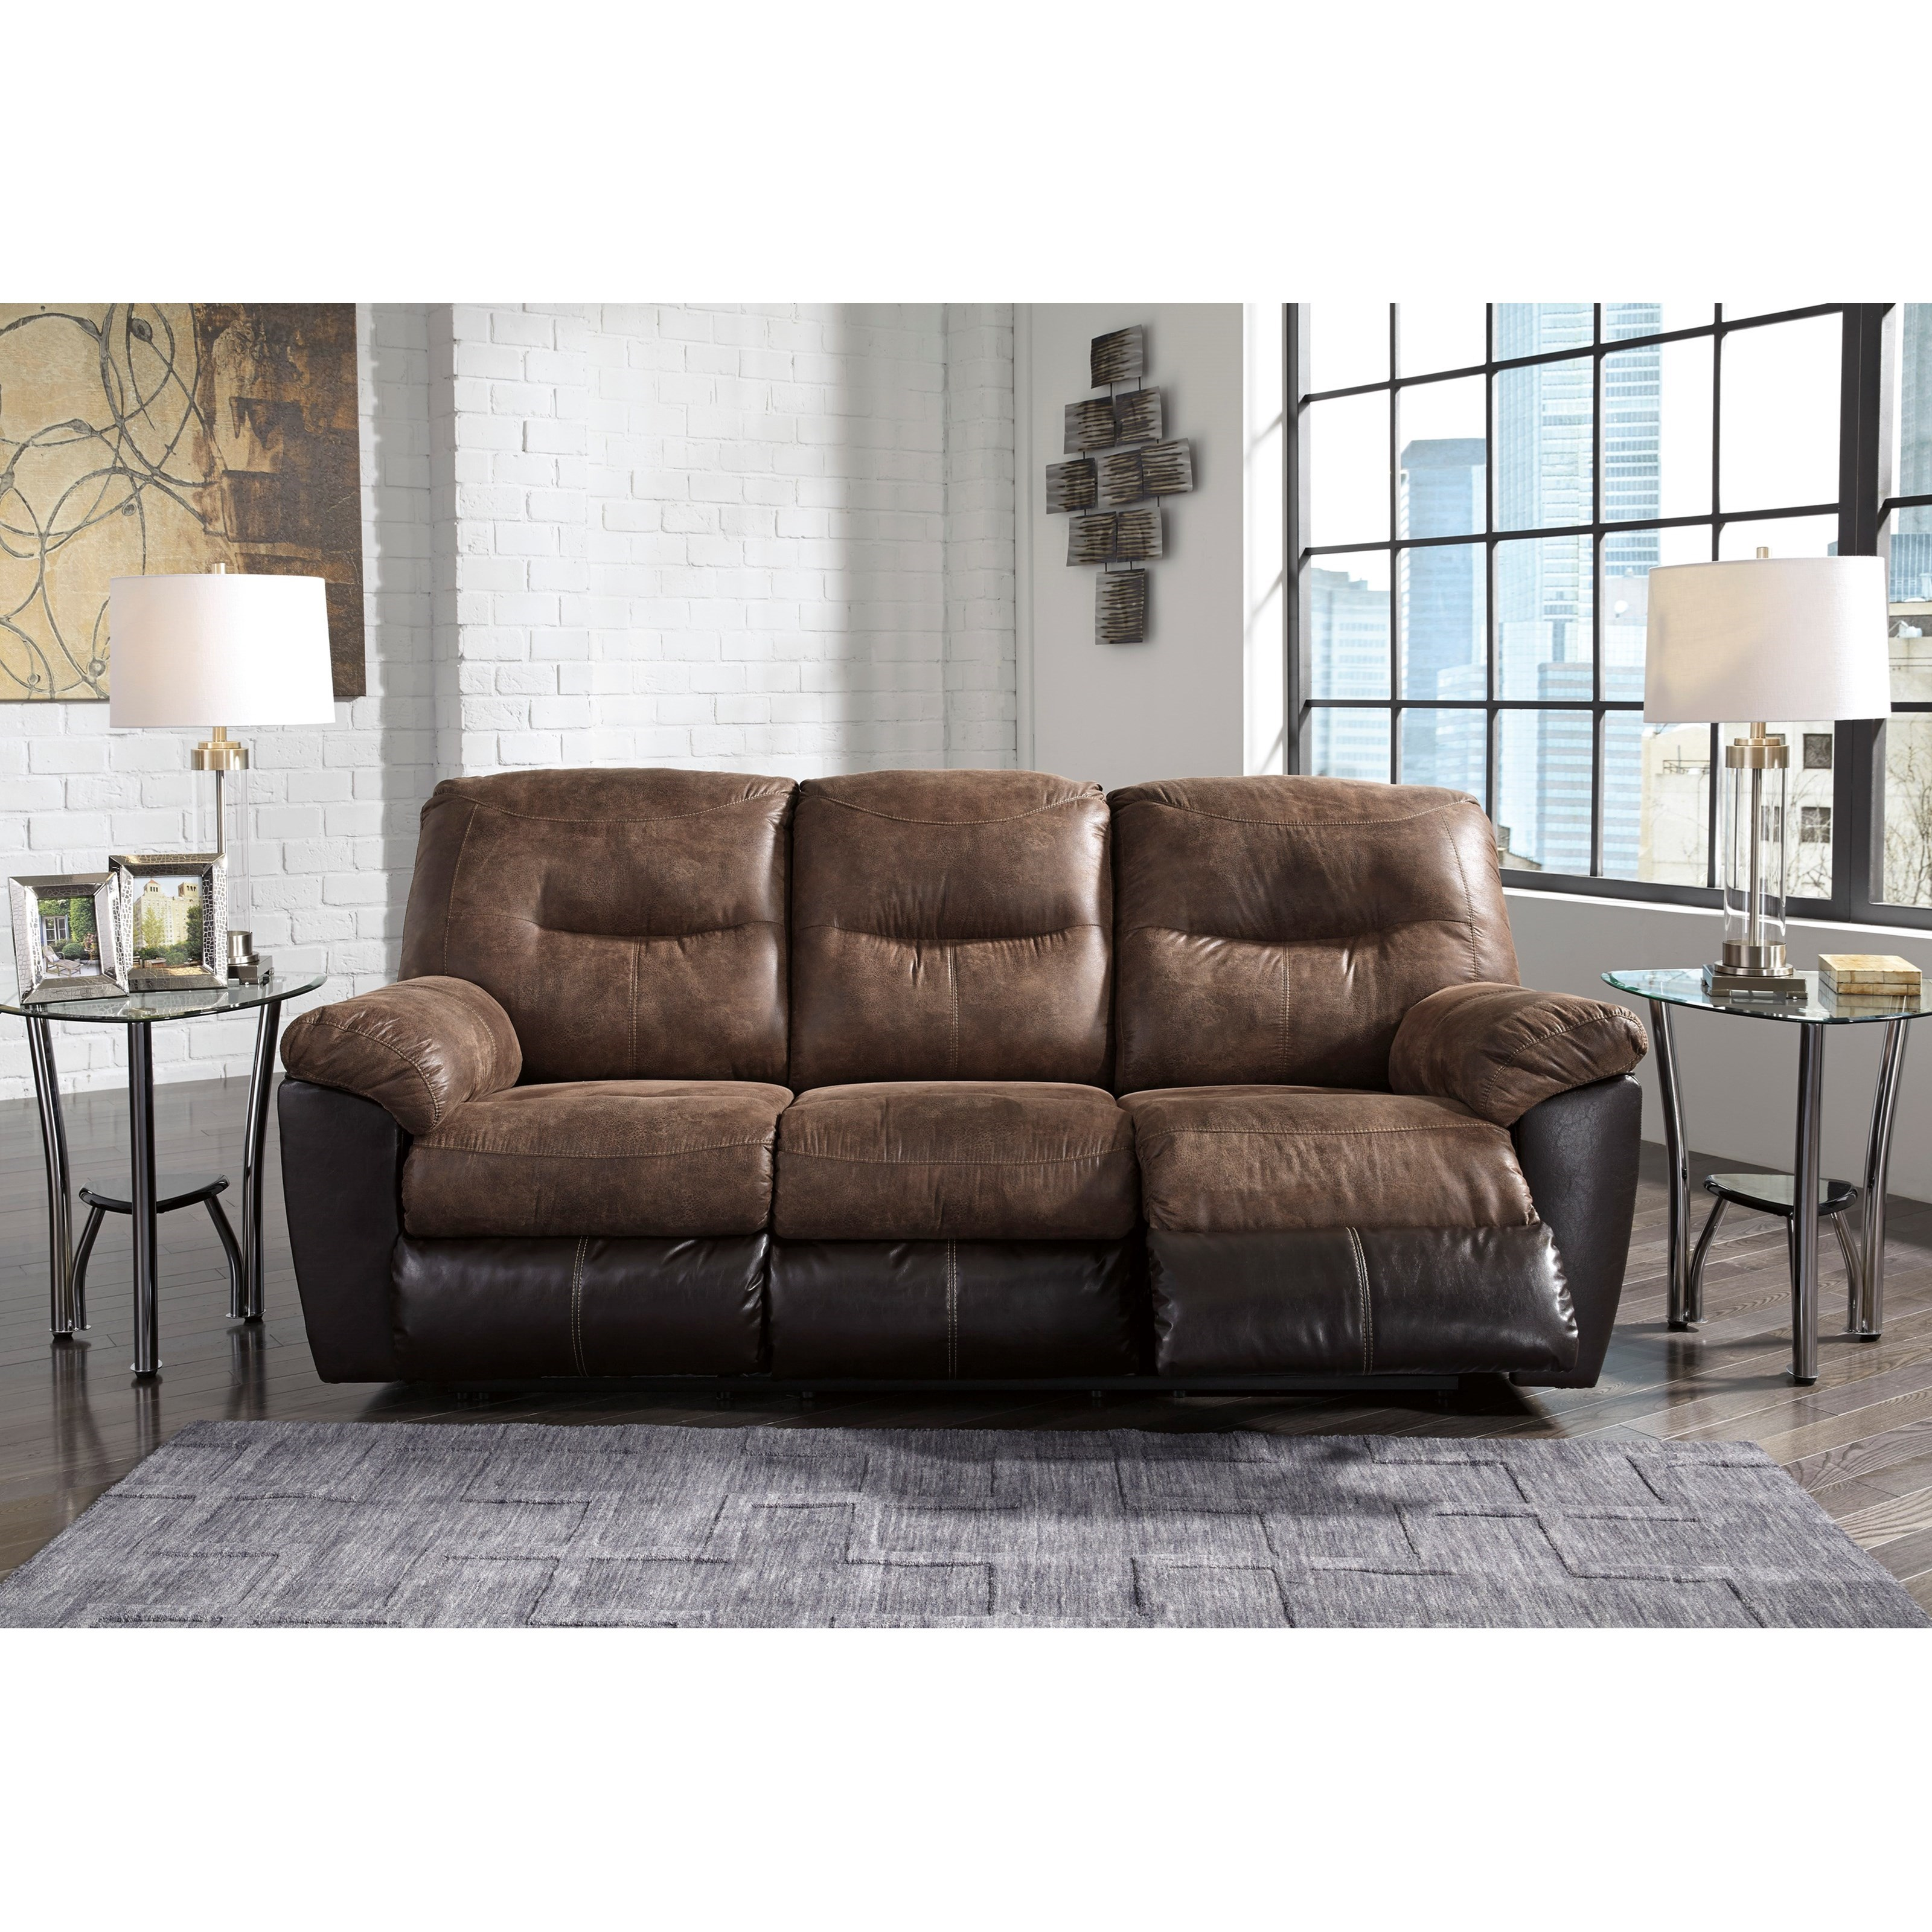 Two tone faux leather reclining sofa by signature design by ashley wolf and gardiner wolf - Sofa reclinable ...